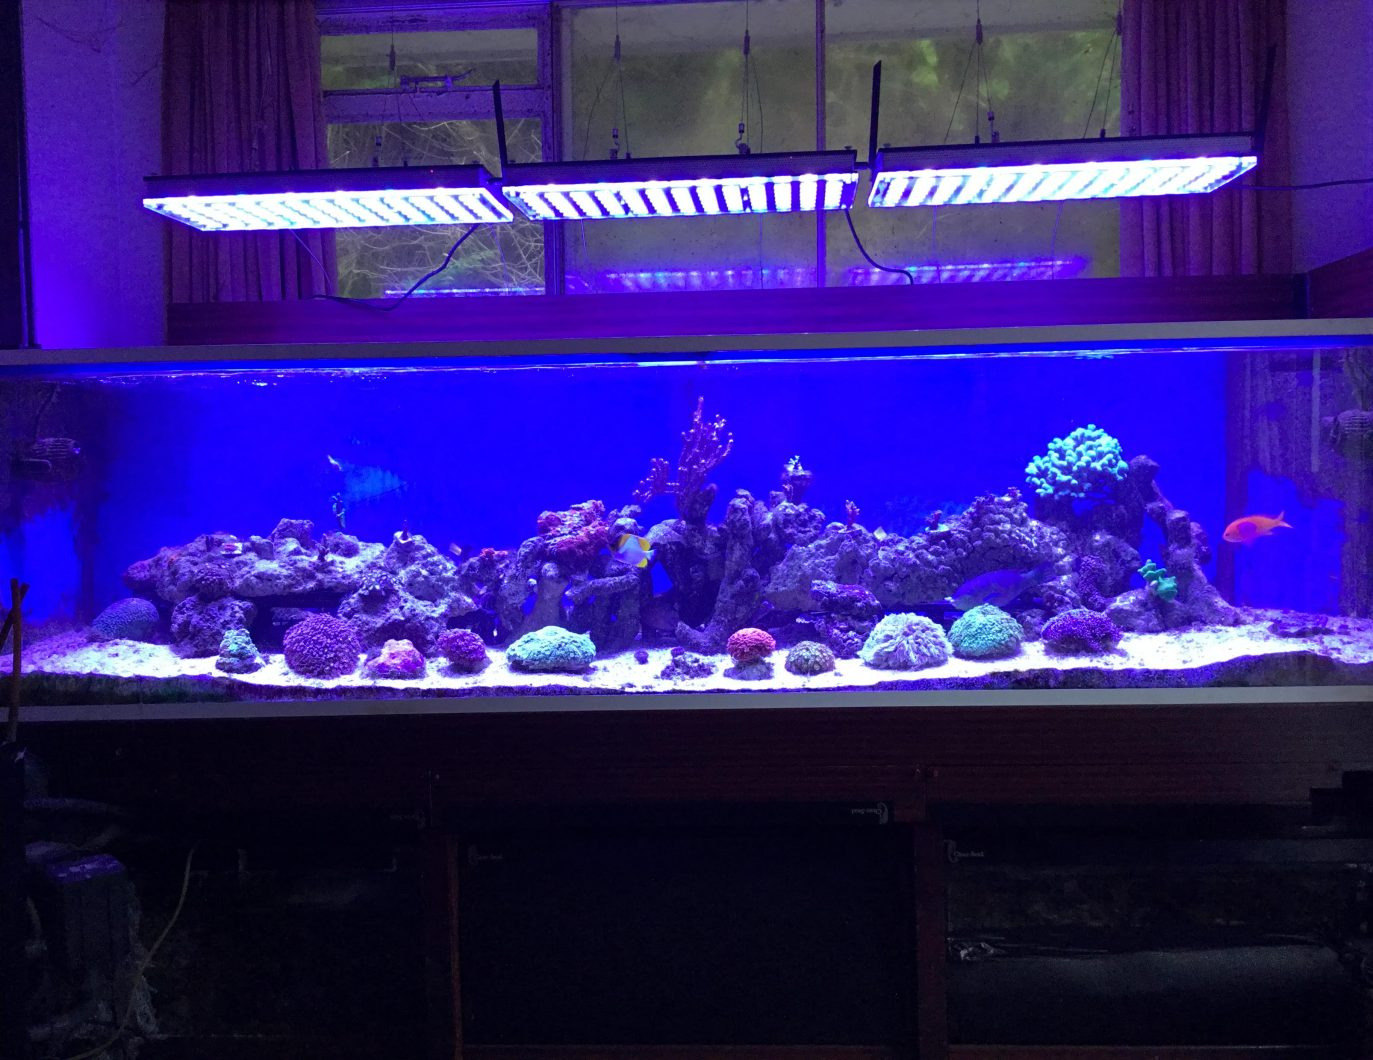 uk-client-pleased-atlantik-v3-reef-lights